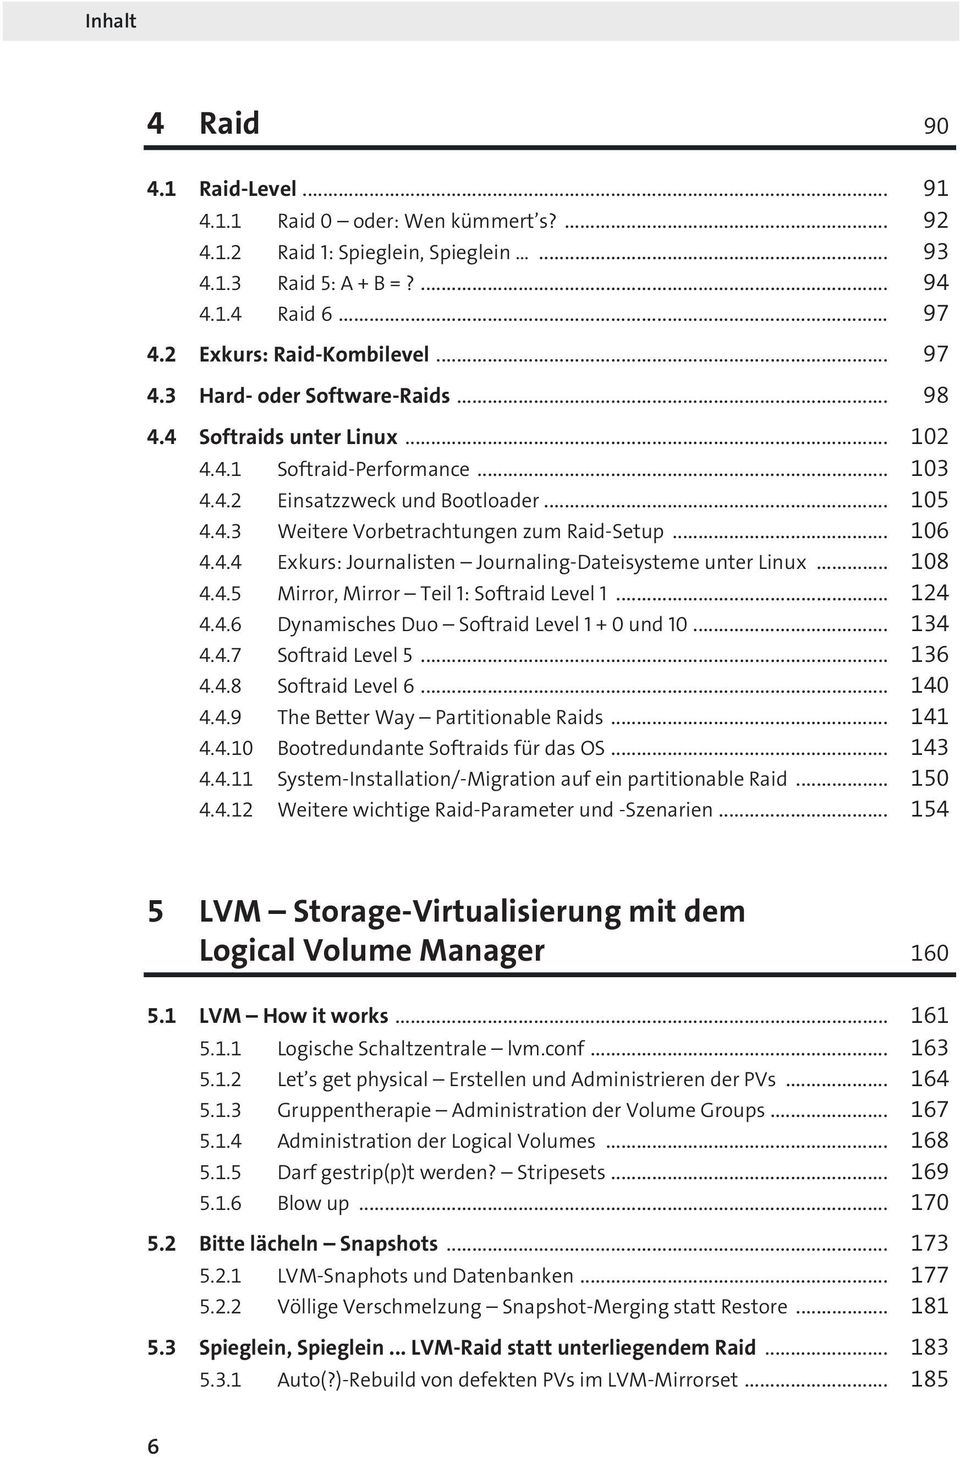 .. 106 4.4.4 Exkurs: Journalisten Journaling-Dateisysteme unter Linux... 108 4.4.5 Mirror, Mirror Teil 1: Softraid Level 1... 124 4.4.6 Dynamisches Duo Softraid Level 1 + 0 und 10... 134 4.4.7 Softraid Level 5.